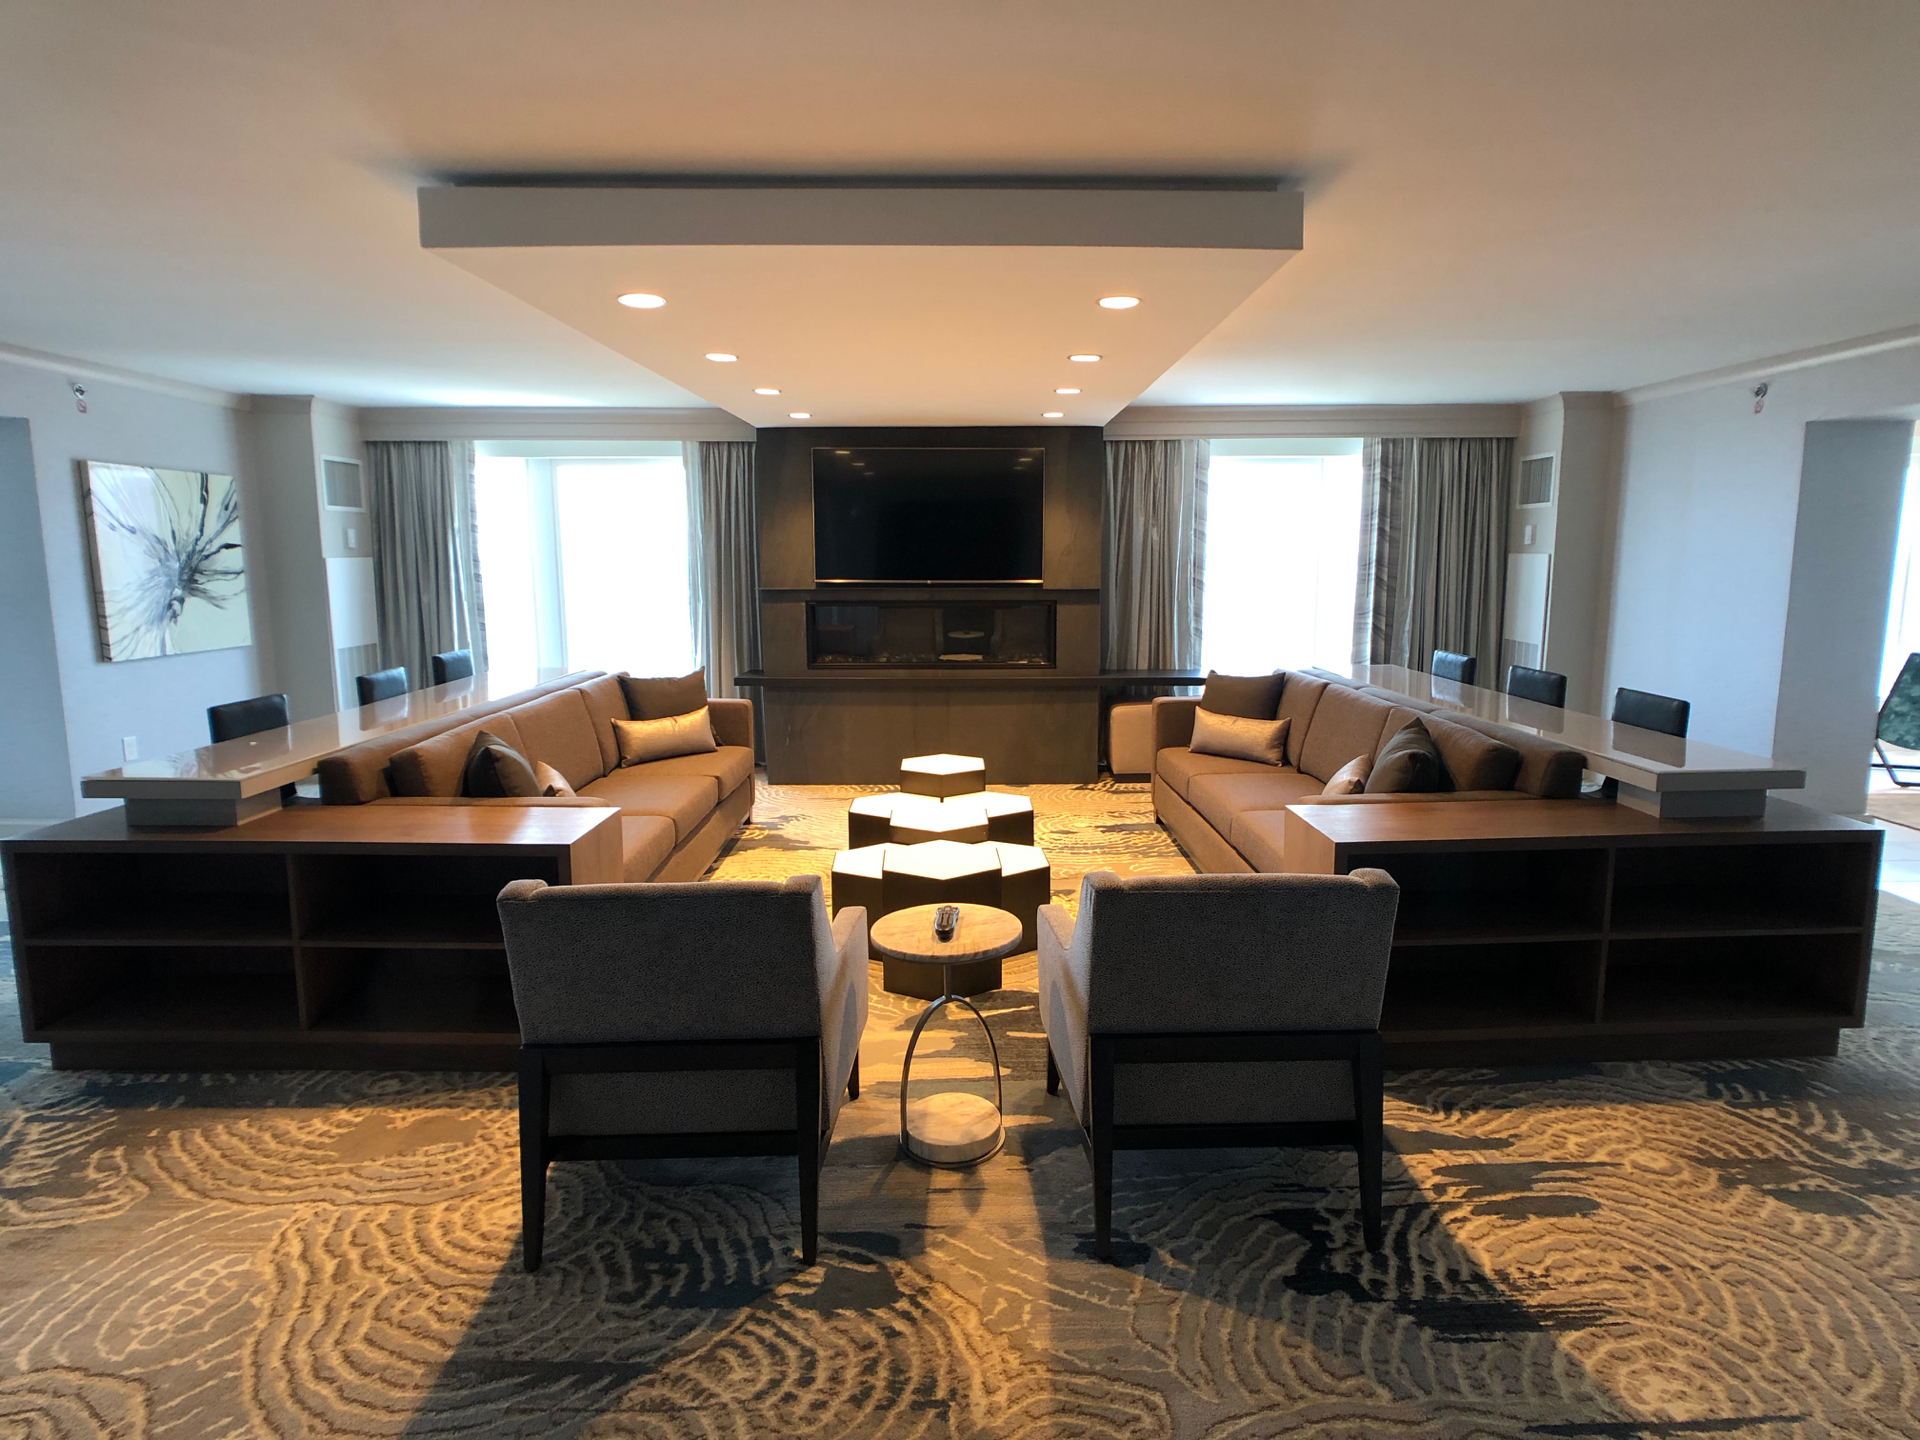 Baltimore Marriott Waterfront hotel renovated common space